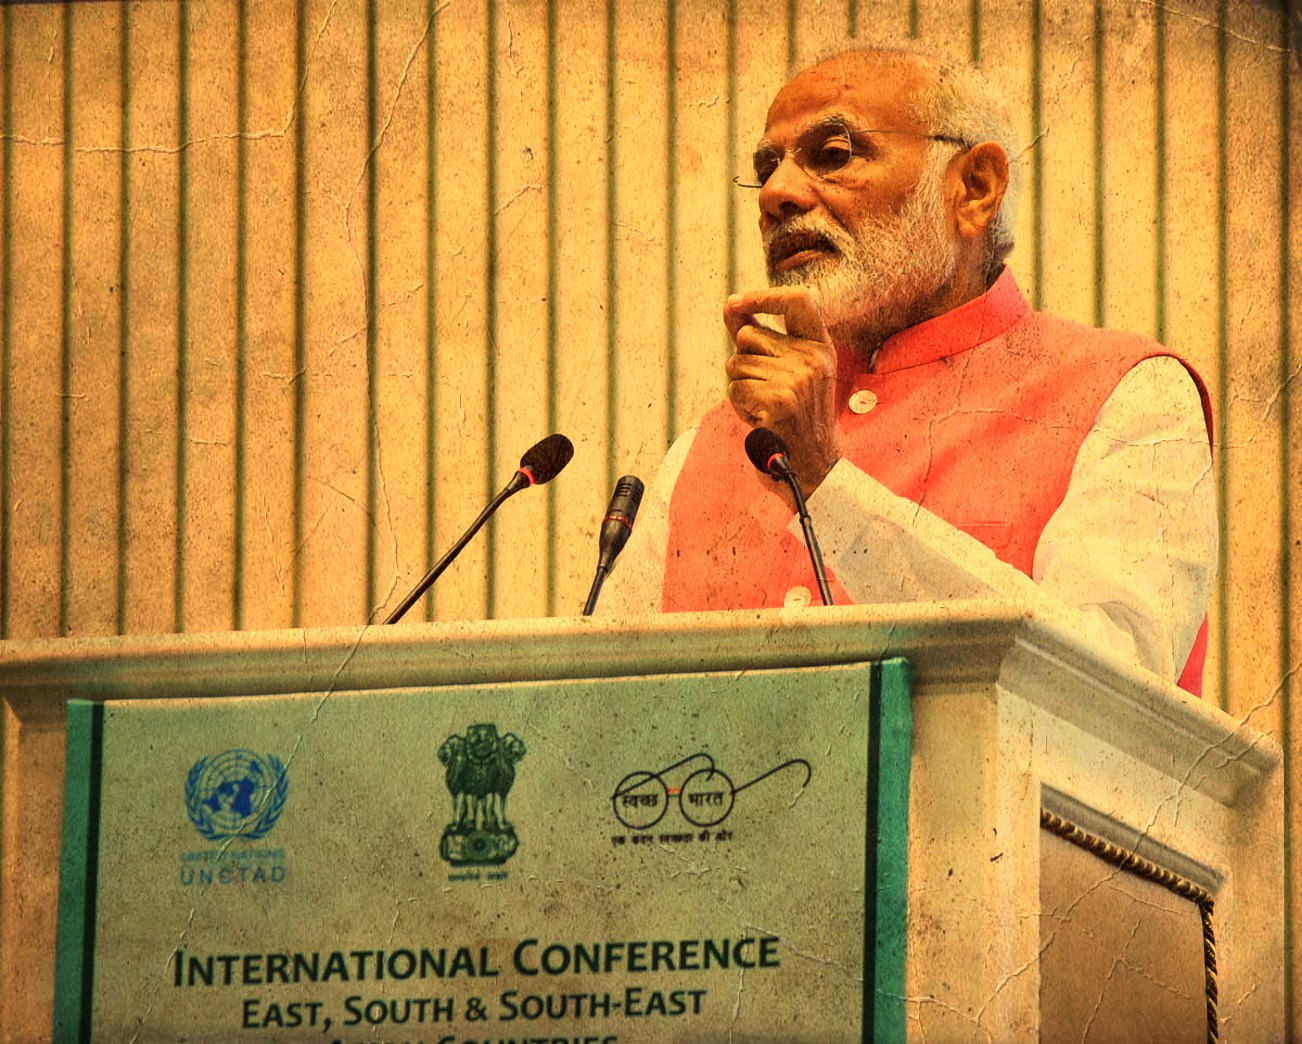 Prime Minister Narendra Modi addressing at the inauguration of the International Conference on Consumer Protection for East, South & South-East Asian Countries, at Vigyan Bhawan, in New Delhi on October 26, 2017. Credit: PIB